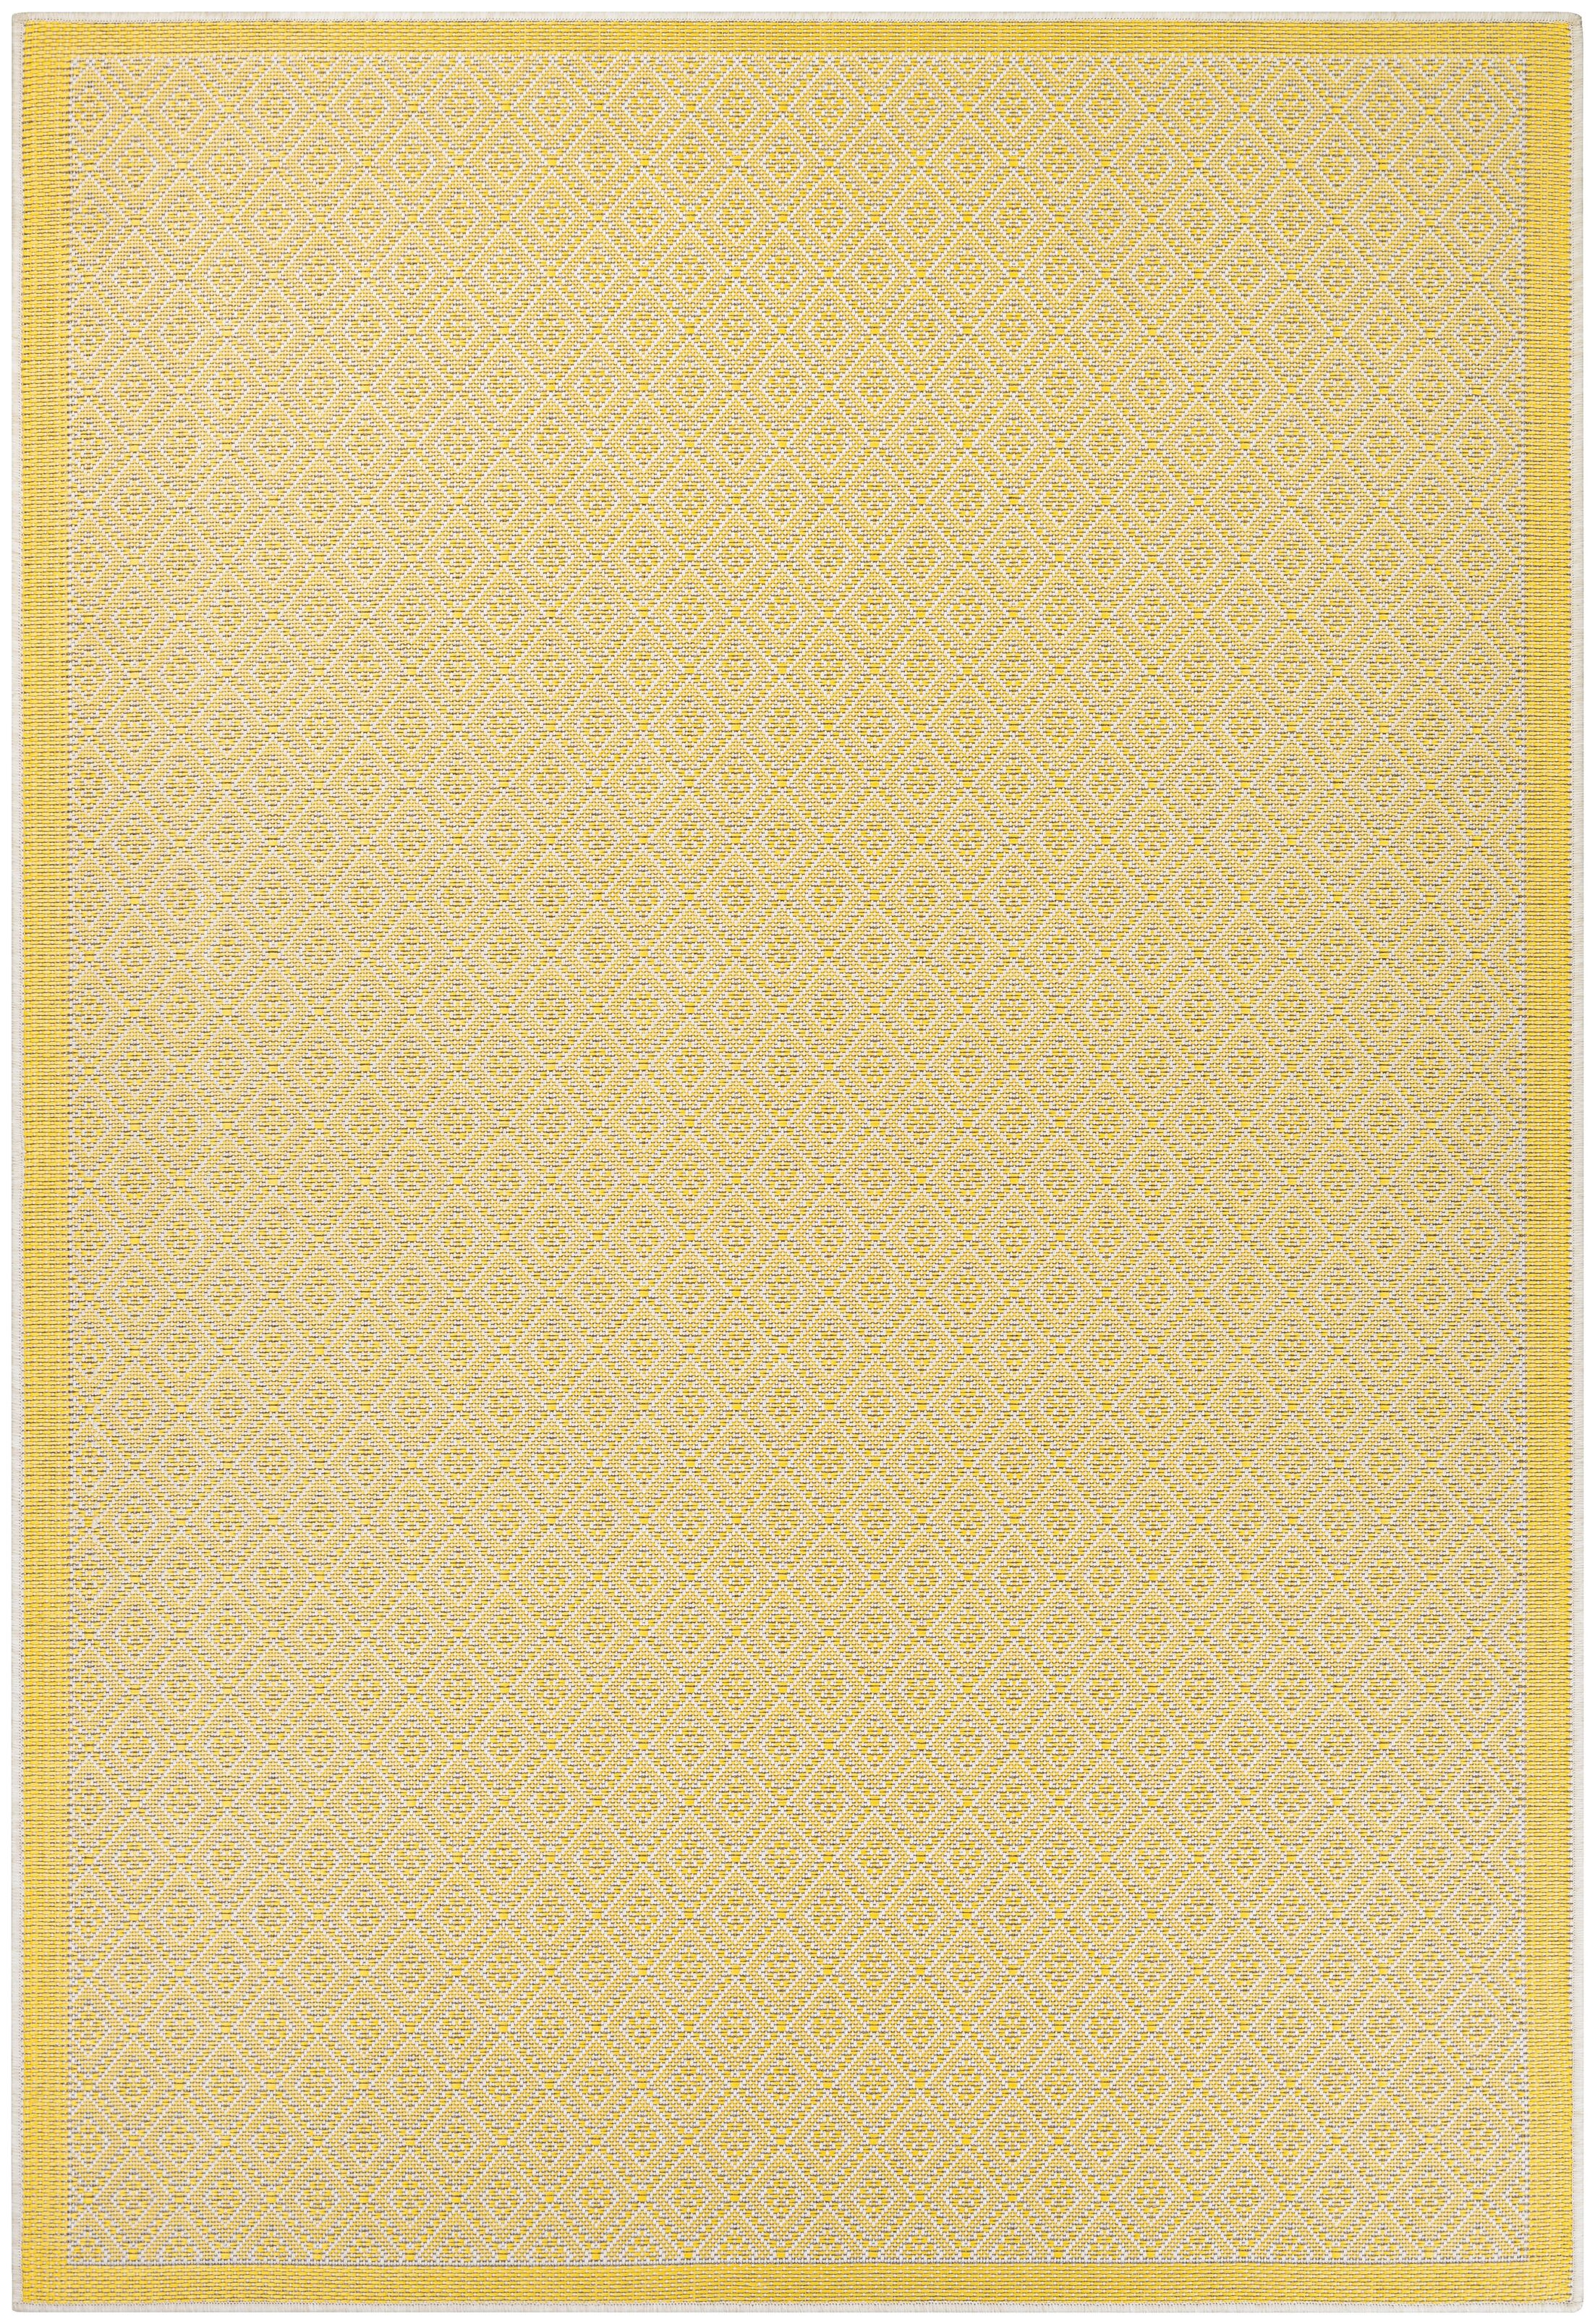 Shackelford Yellow Indoor/Outdoor Area Rug Rug Size: Rectangle 5'3